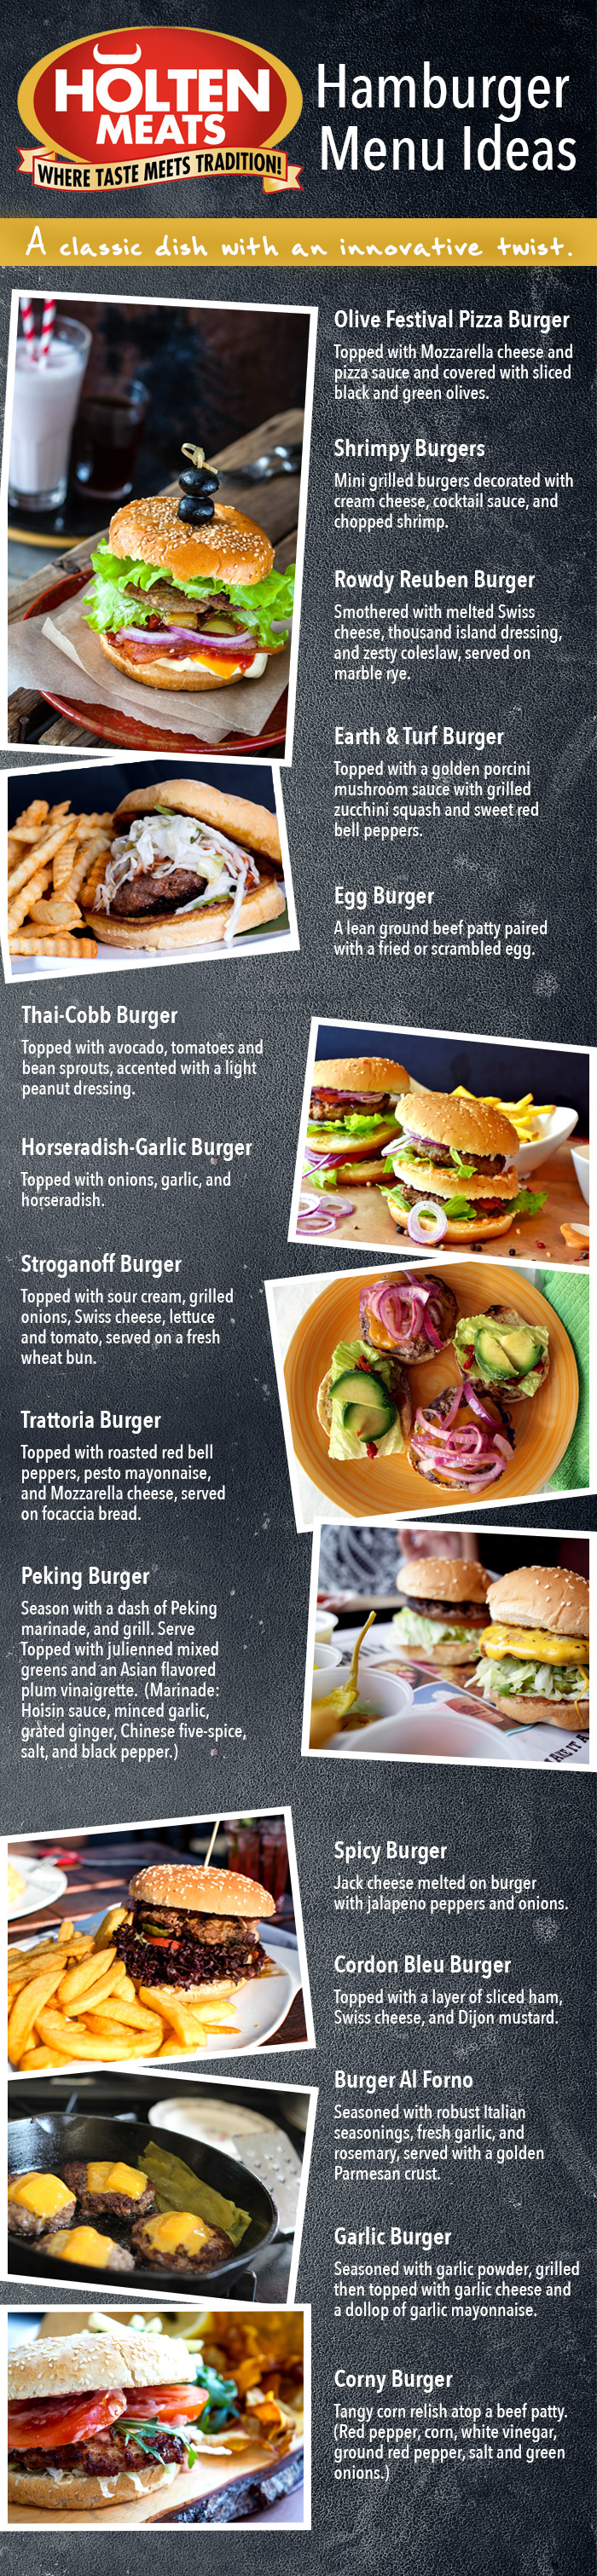 9-18 hamburger recipes